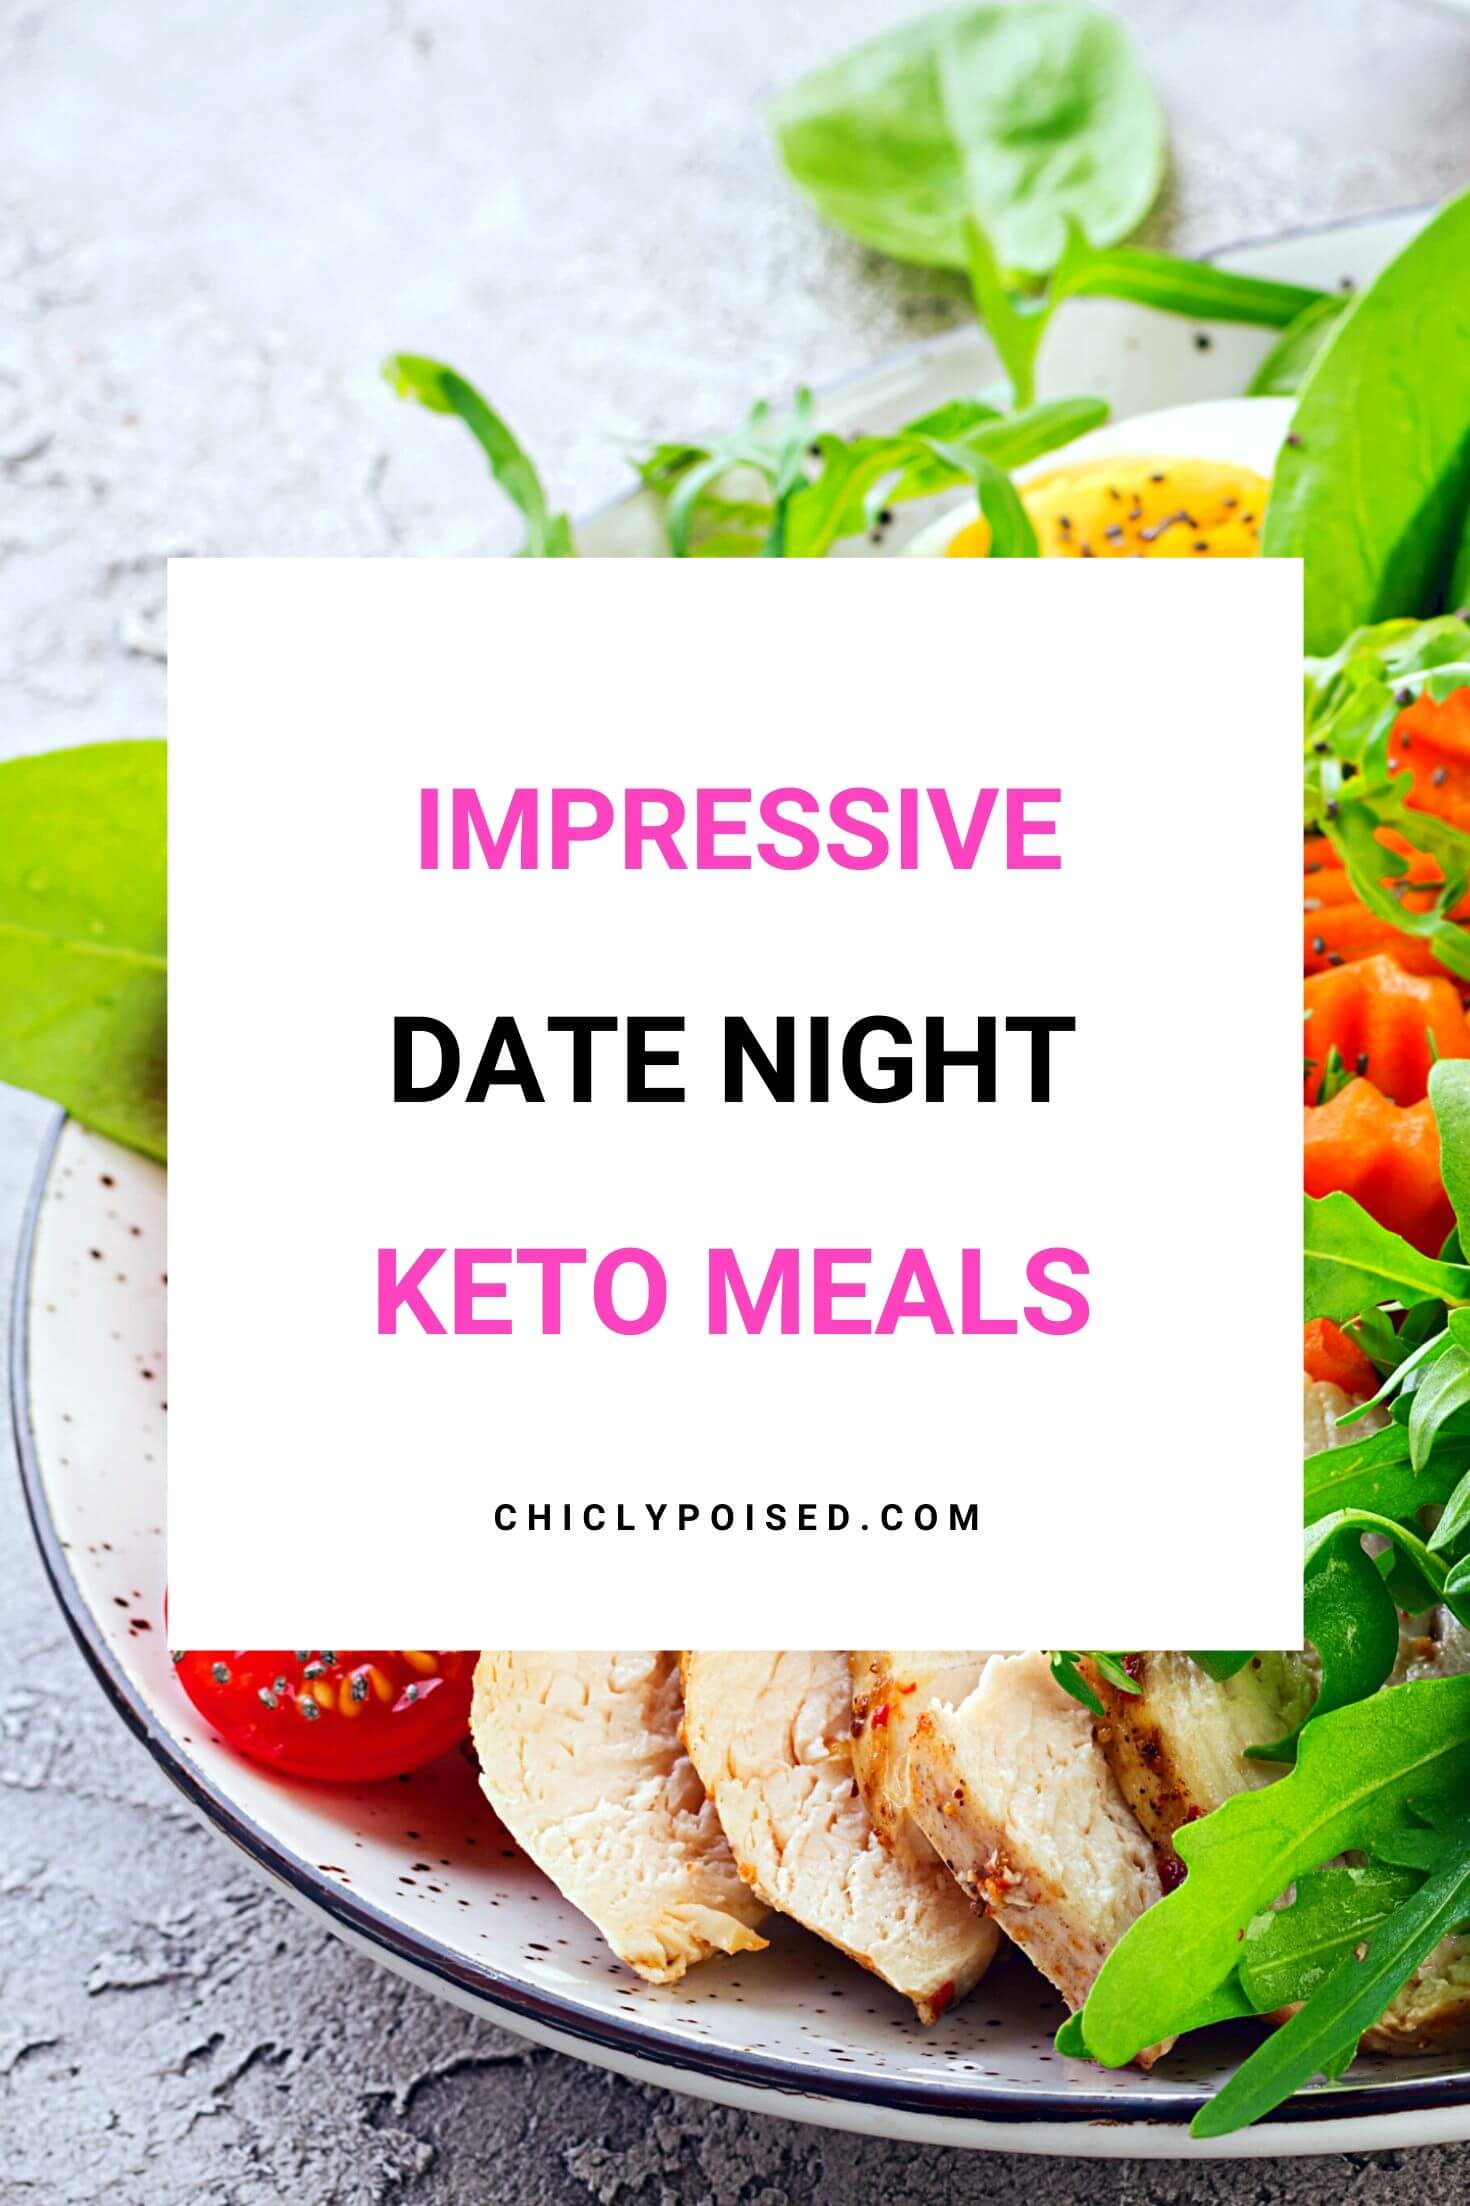 Date Night Keto Meals To Woo Your Date 2 of 2